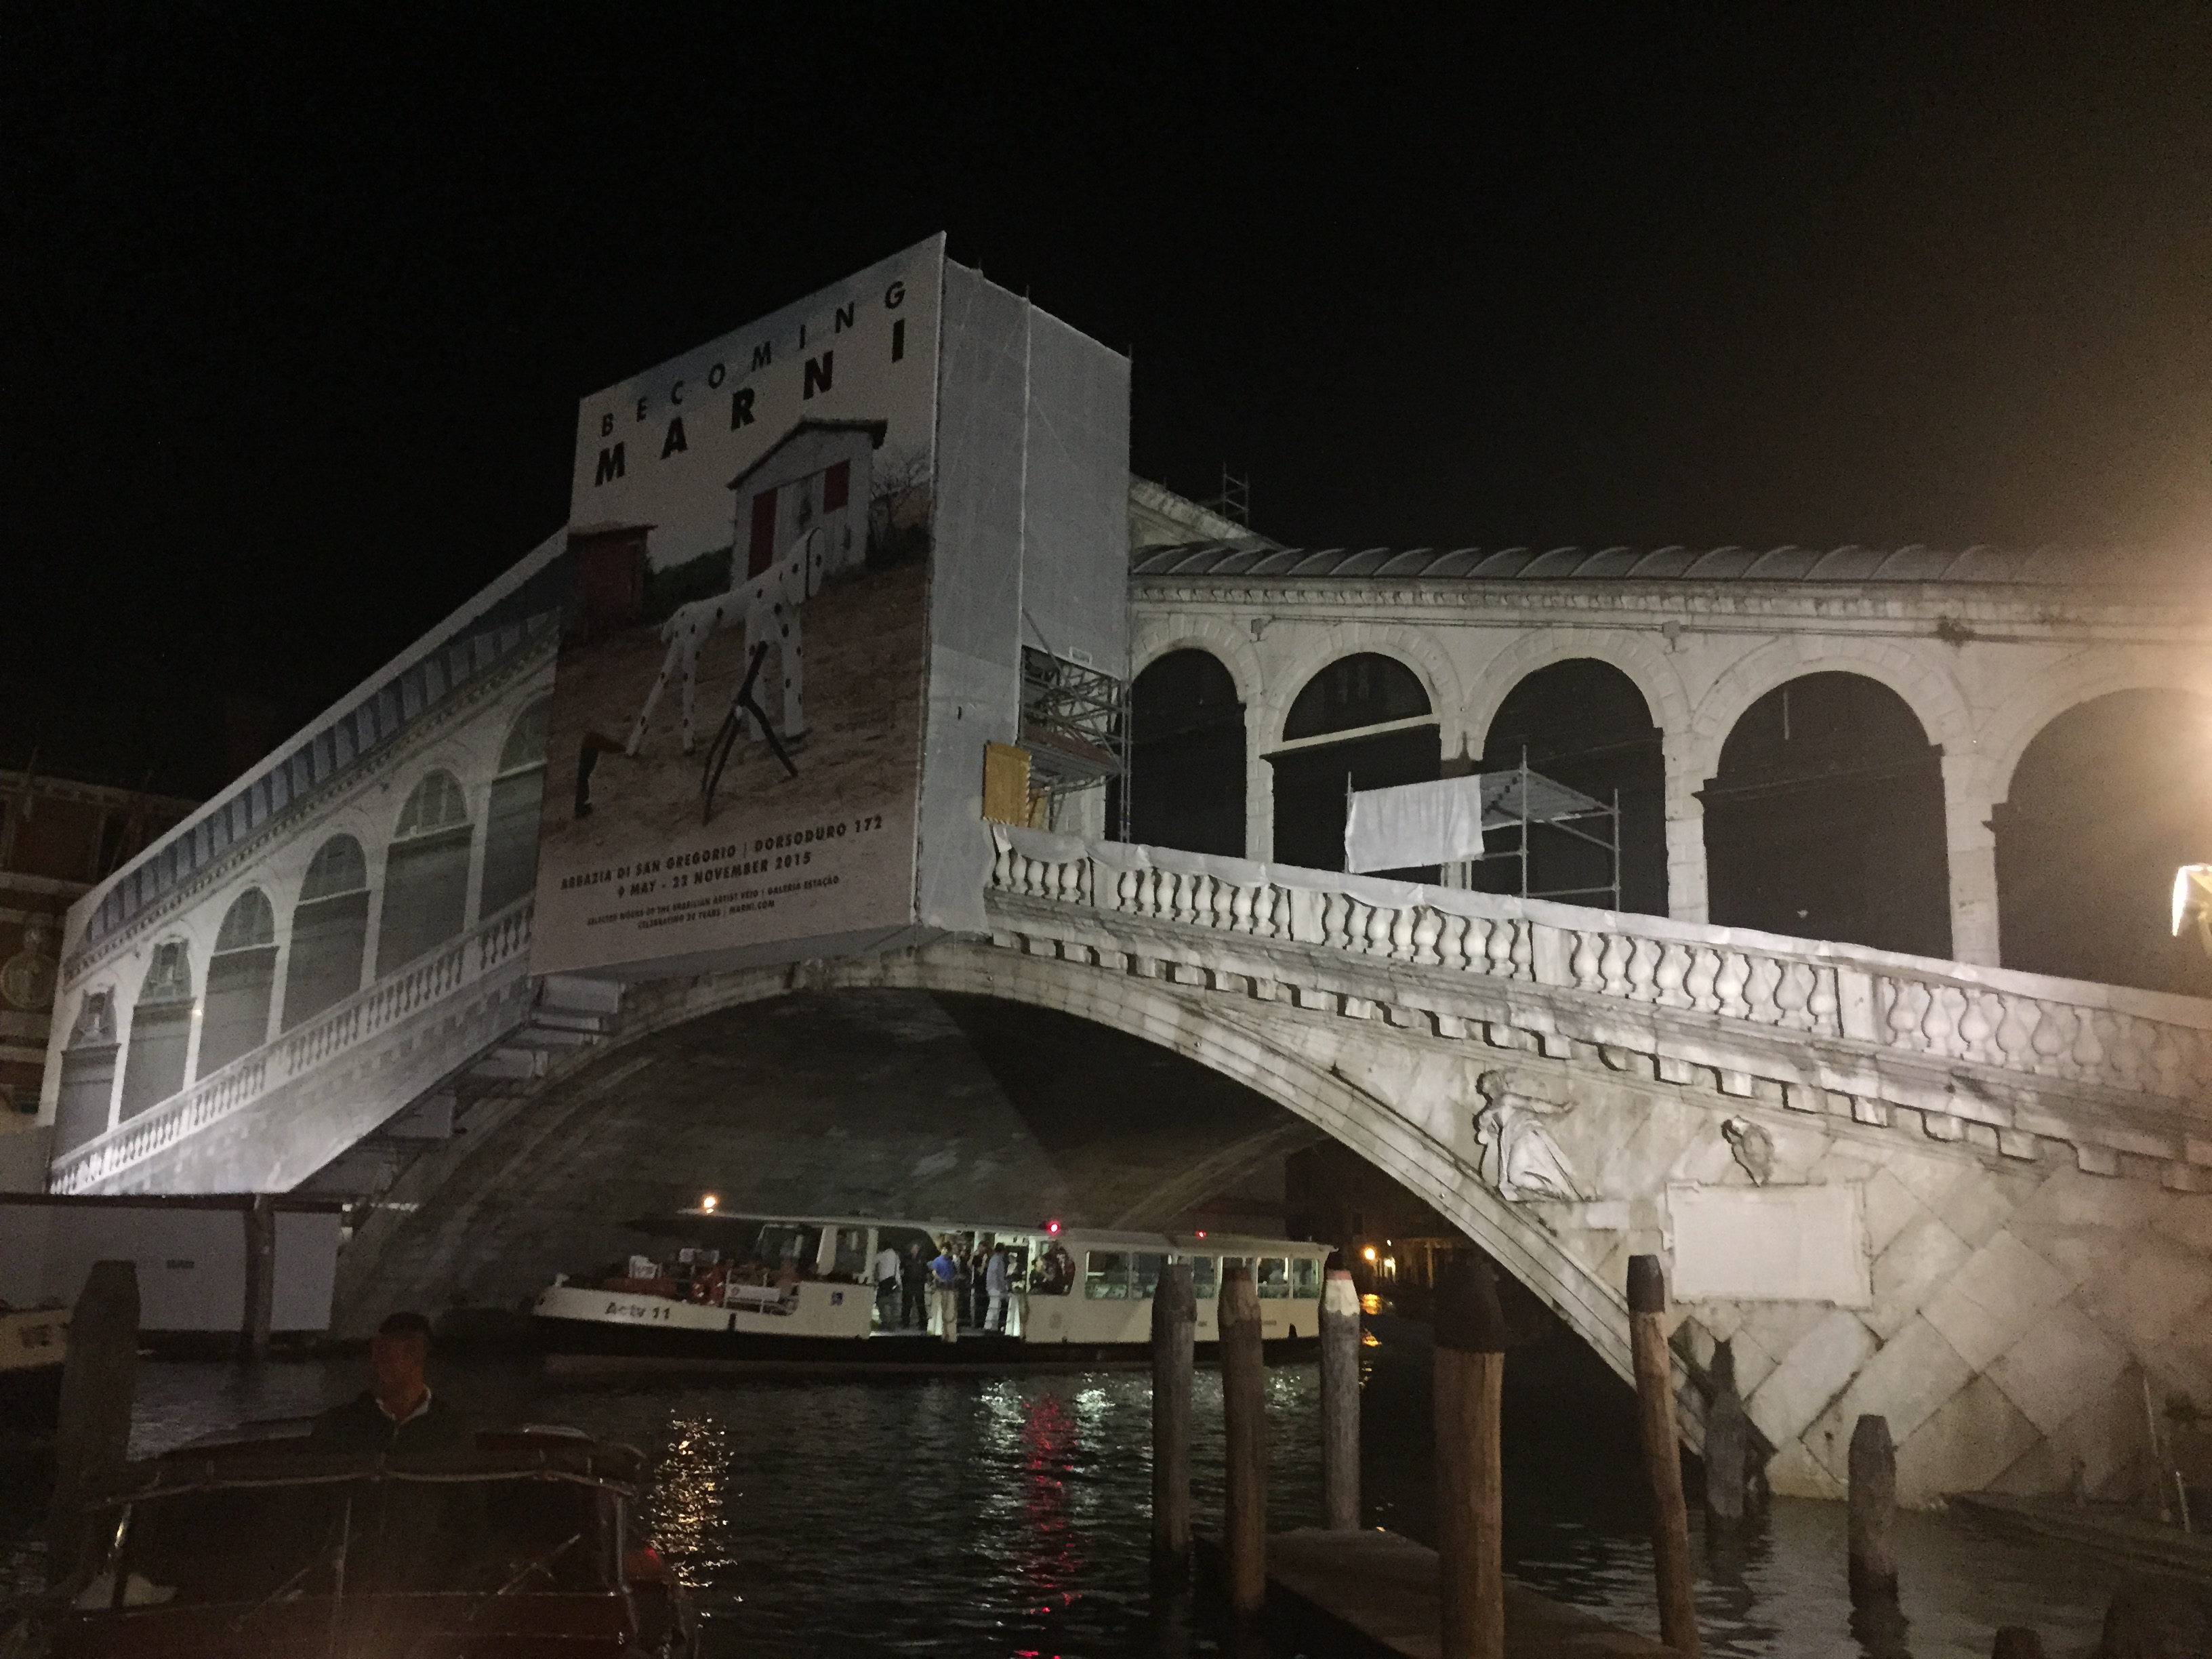 Nighttime photo of arch bridge over canal covered in scaffolding on the left side.